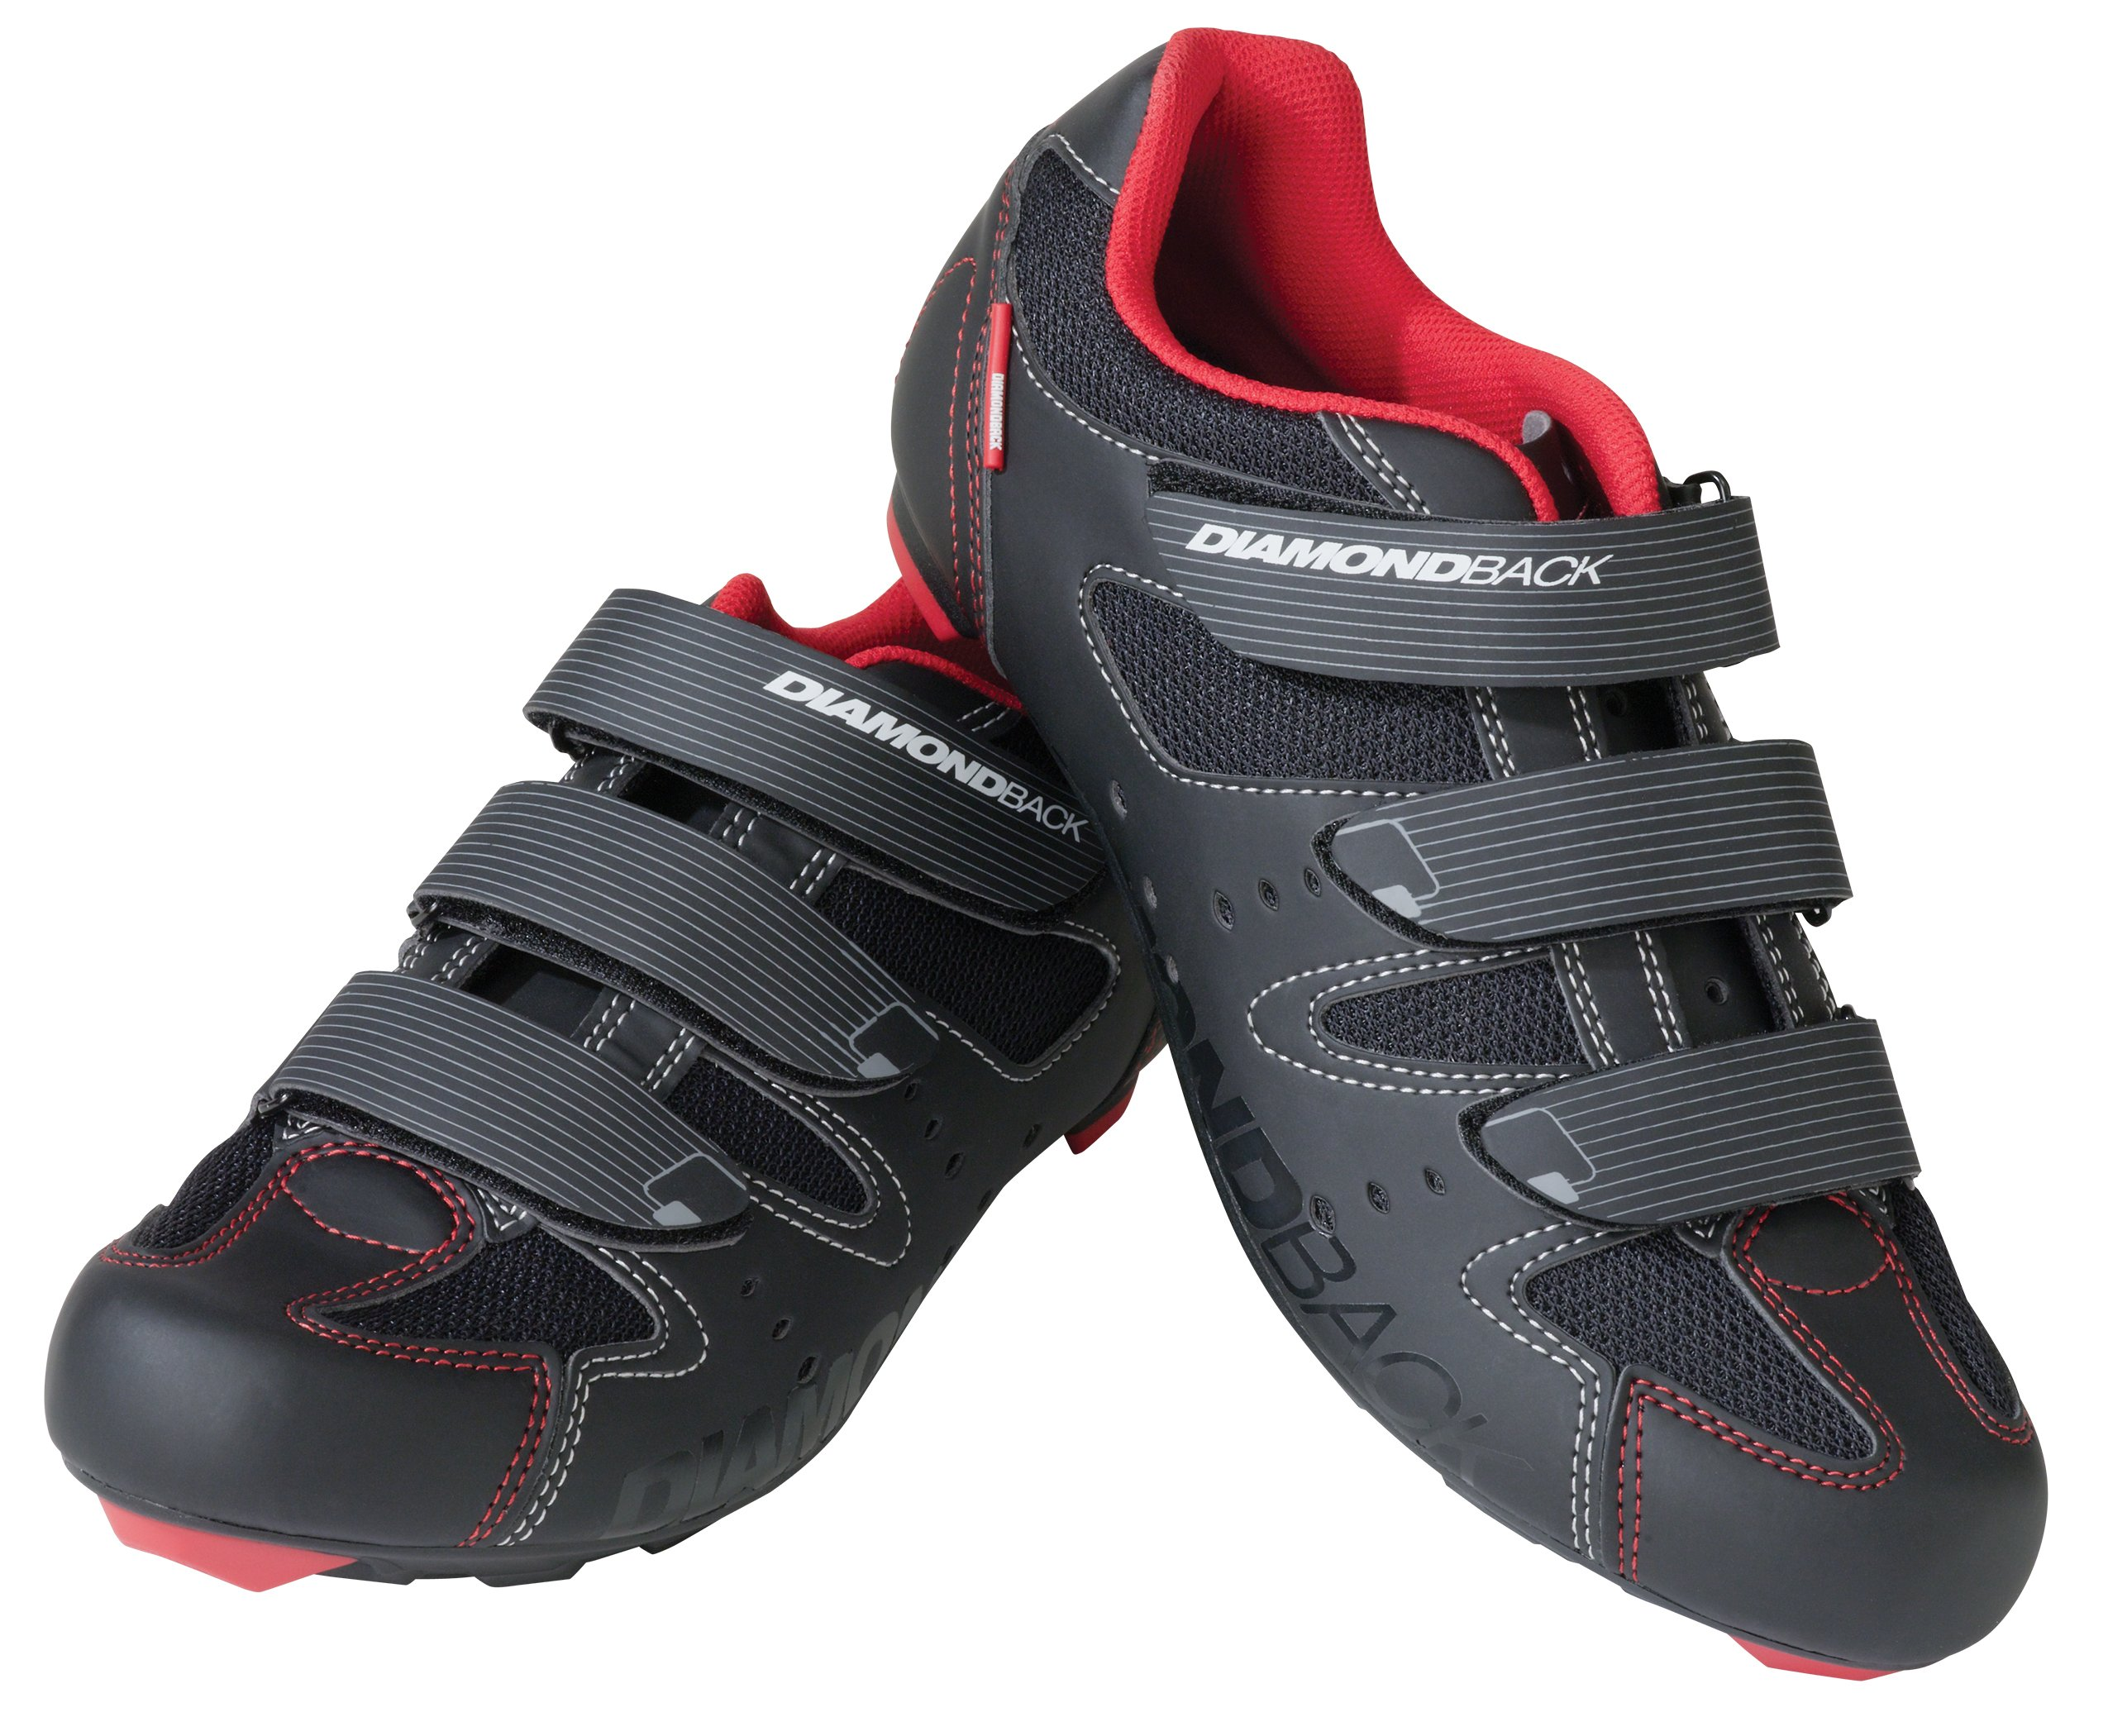 Diamondback Men's Century Clipless Road Cycling Shoe, Size 44 EU/10.5 US